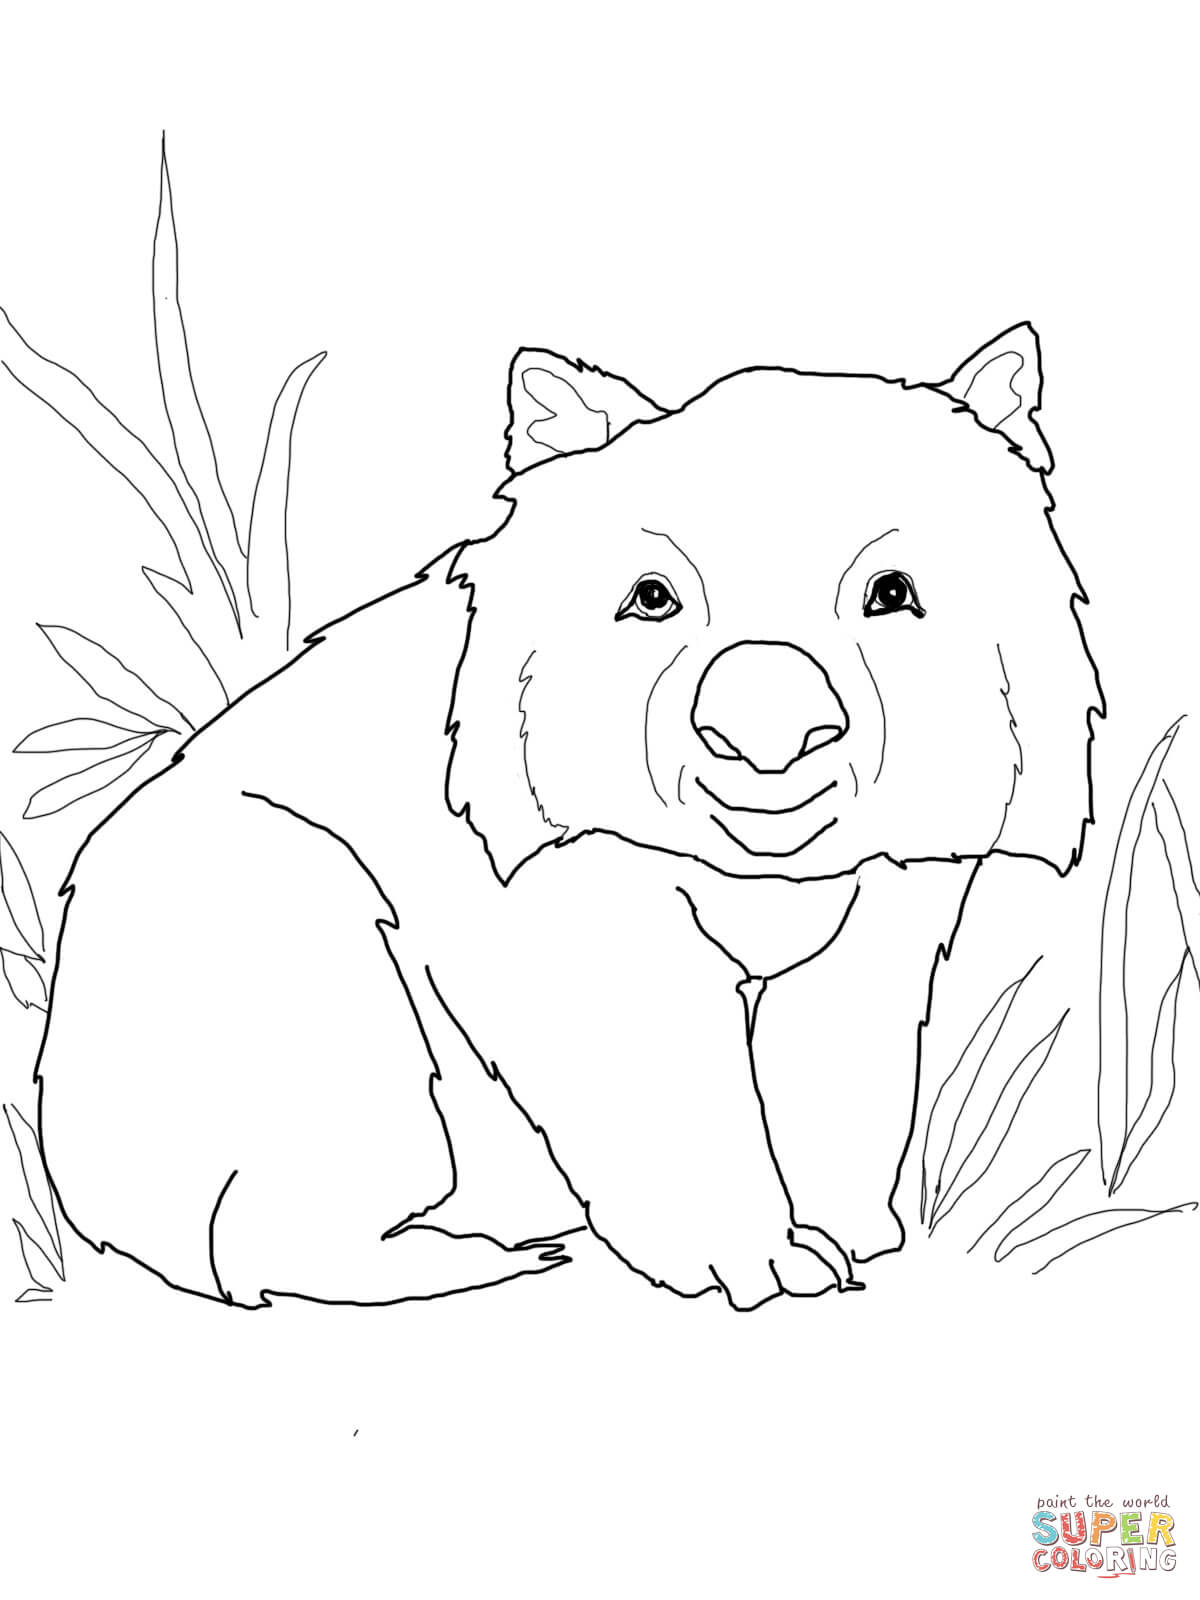 wombat colouring common wombat coloring page free printable coloring pages wombat colouring